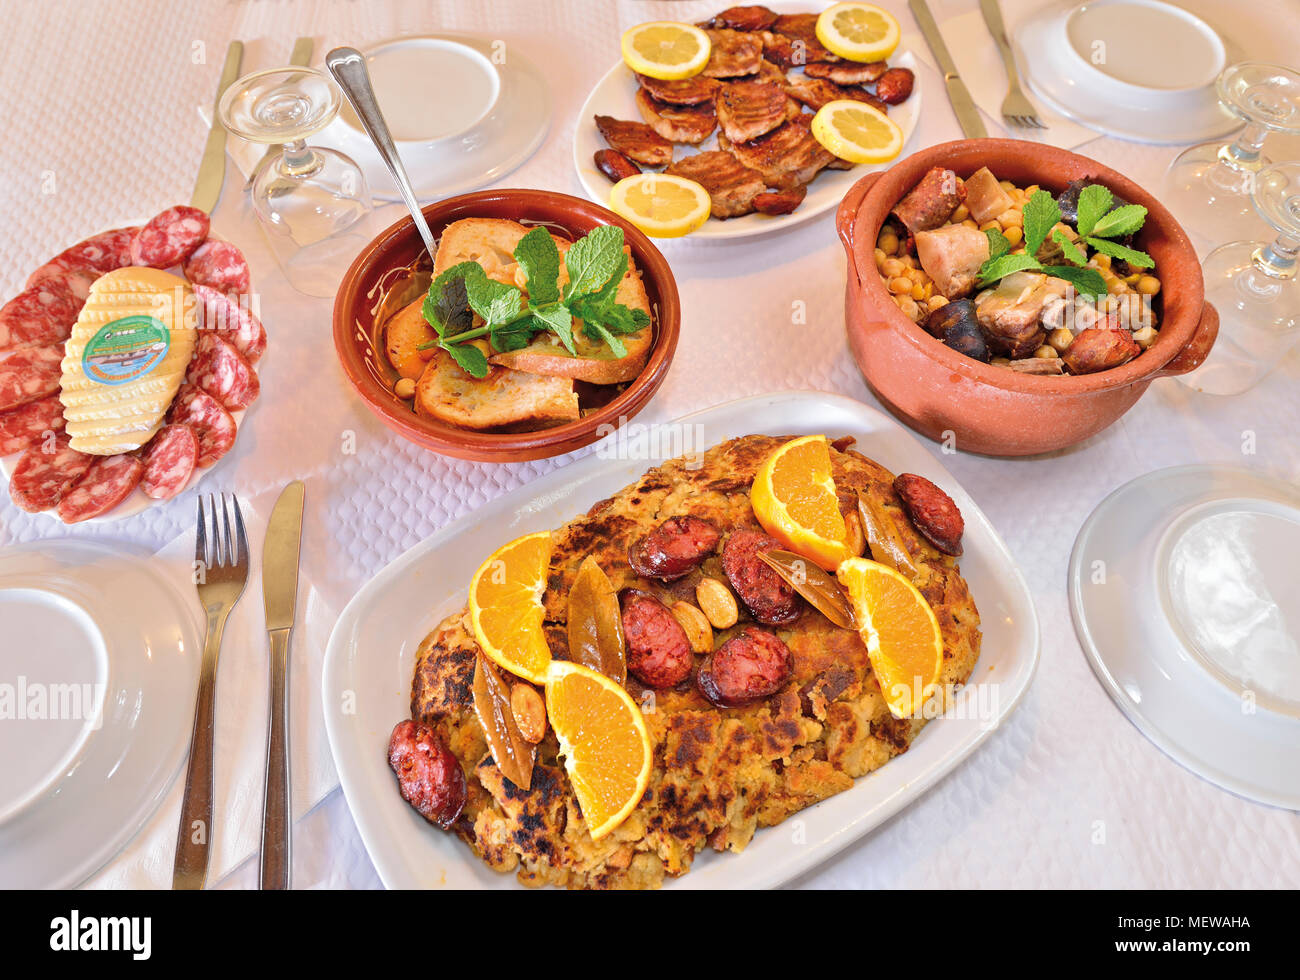 Restaurant table  with different dishes and regional countryside gastronomy - Stock Image